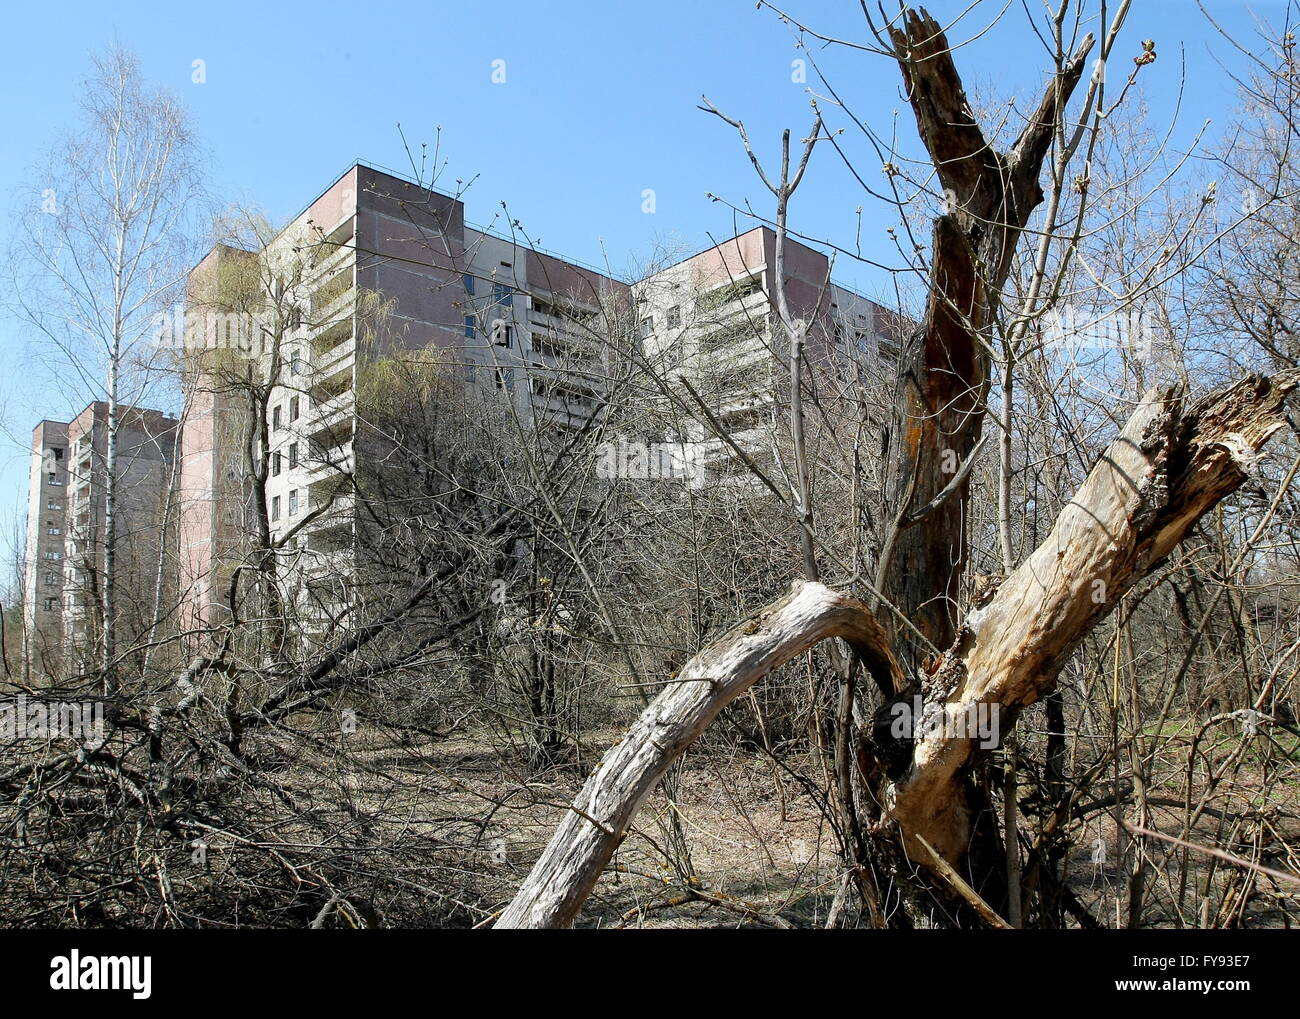 PRIPYAT, UKRAINE. Pictured in this file image is a block of flats in the abandoned town of Pripyat near the Chernobyl - Stock Image